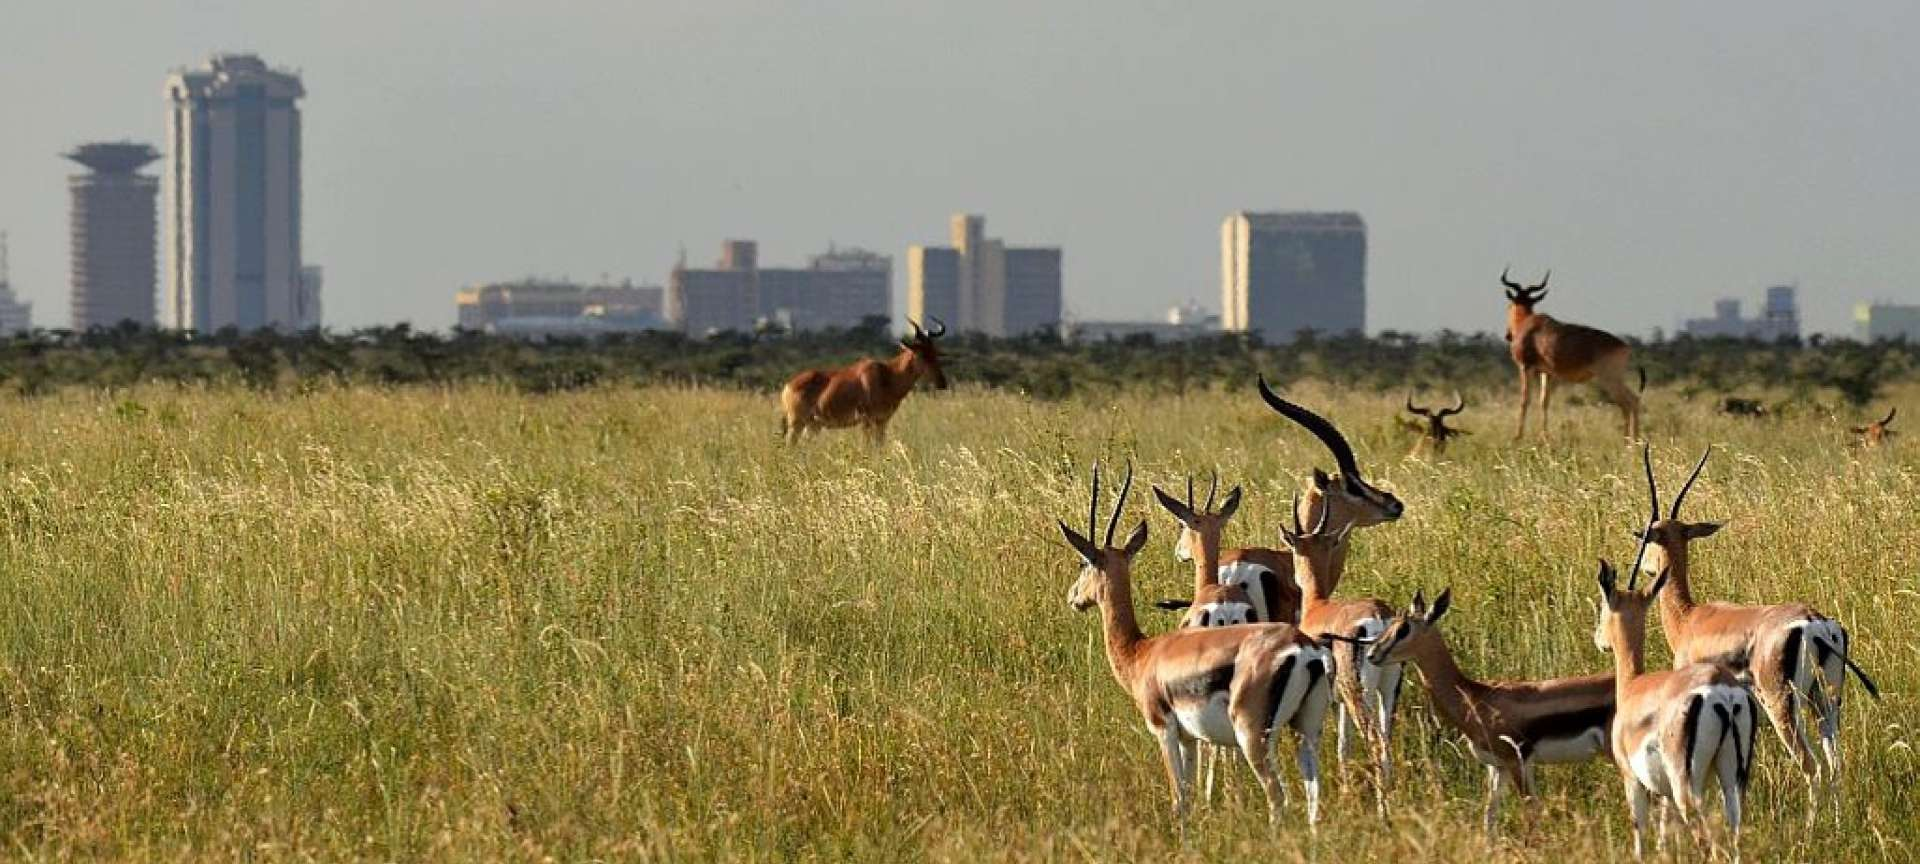 Nairobi National Park - Africa Wildlife Safaris